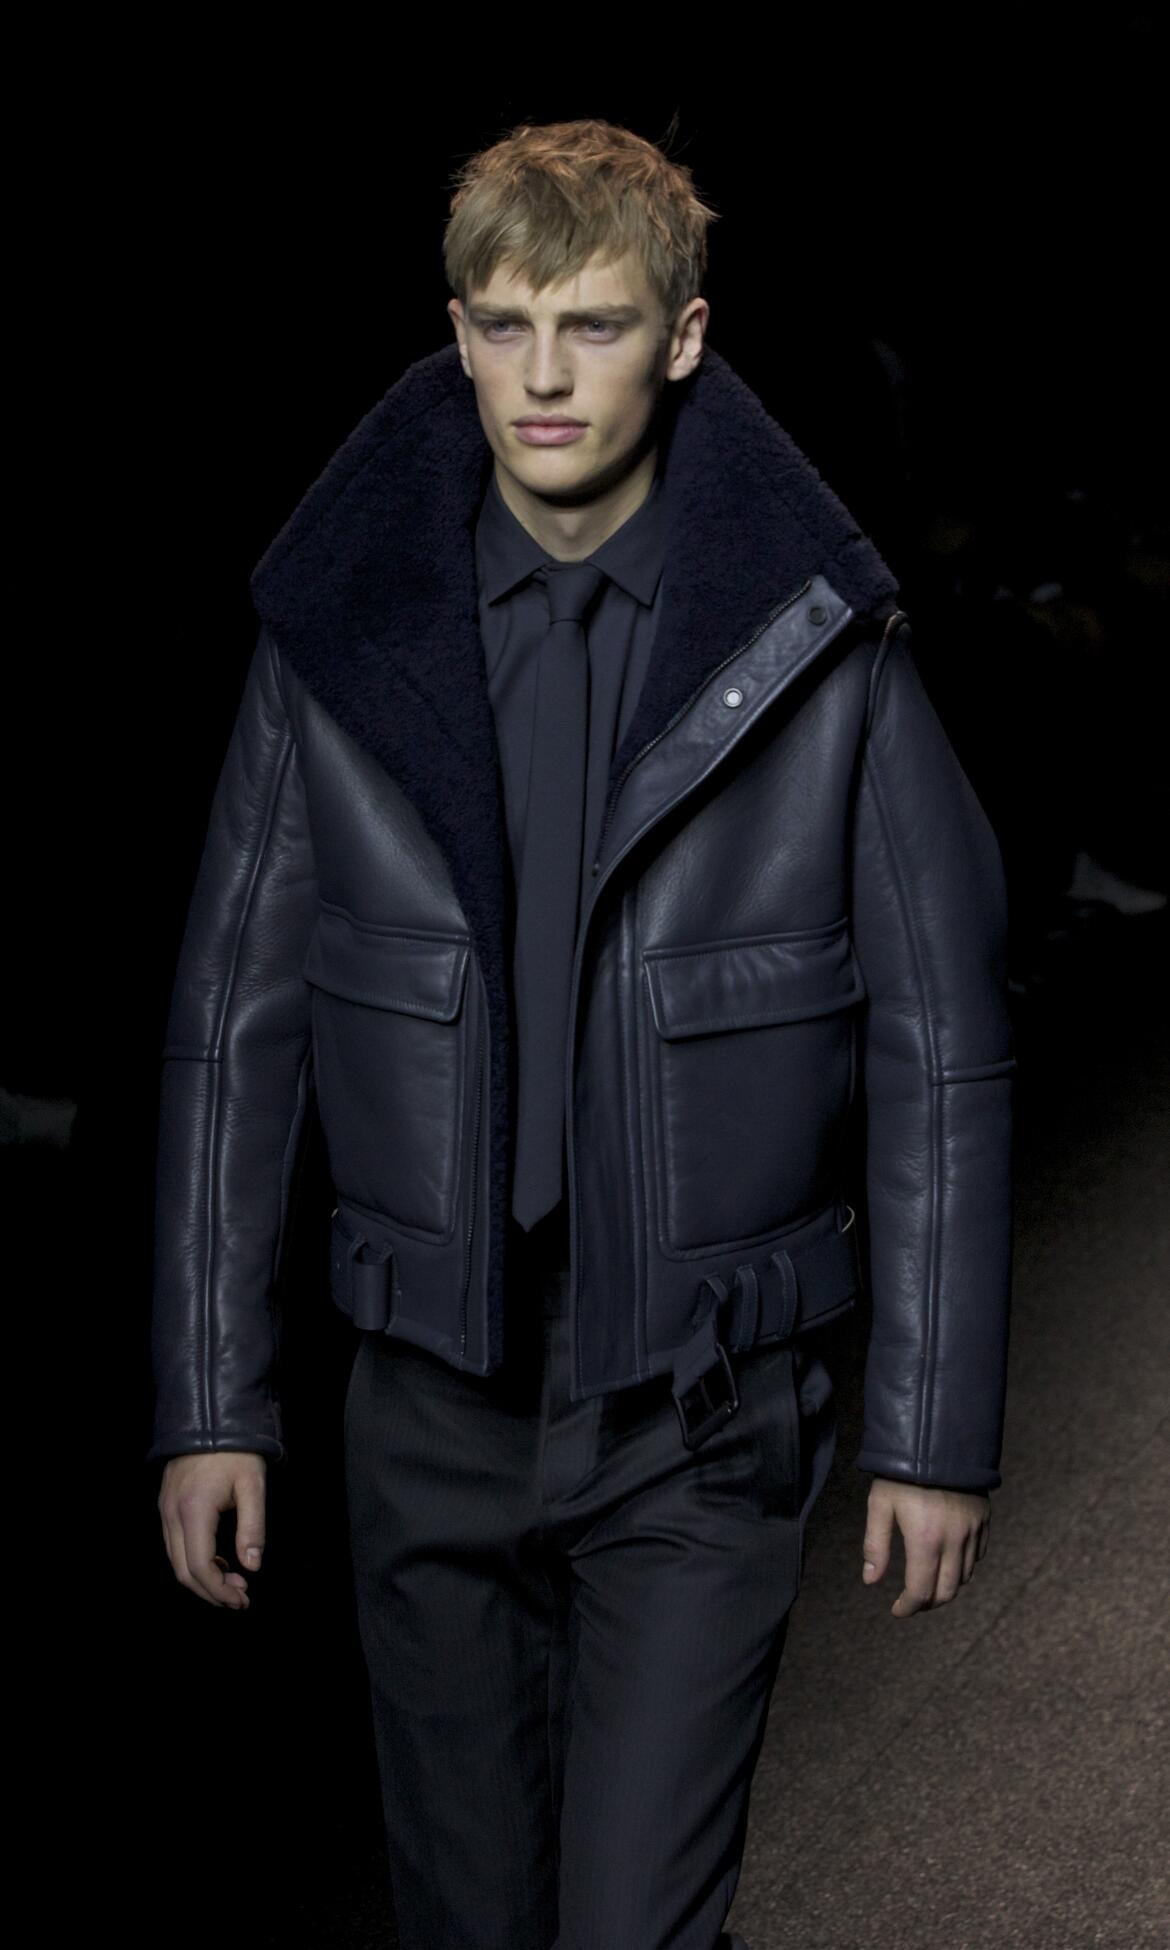 Salvatore Ferragamo Fall Winter 2014 Fashion